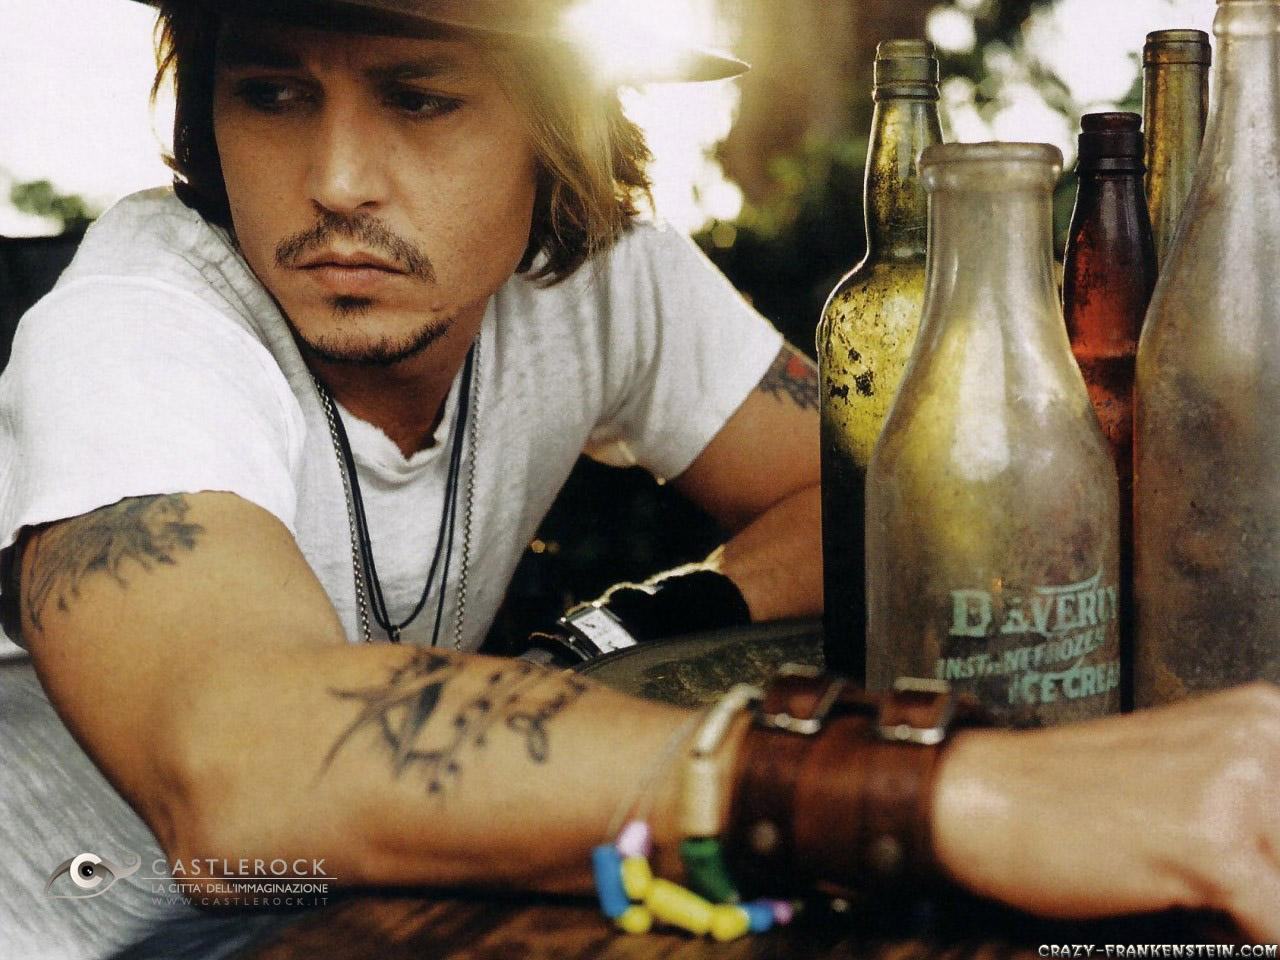 Johnny Depp wallpapers 2 - Male celebrity - Crazy Frankenstein